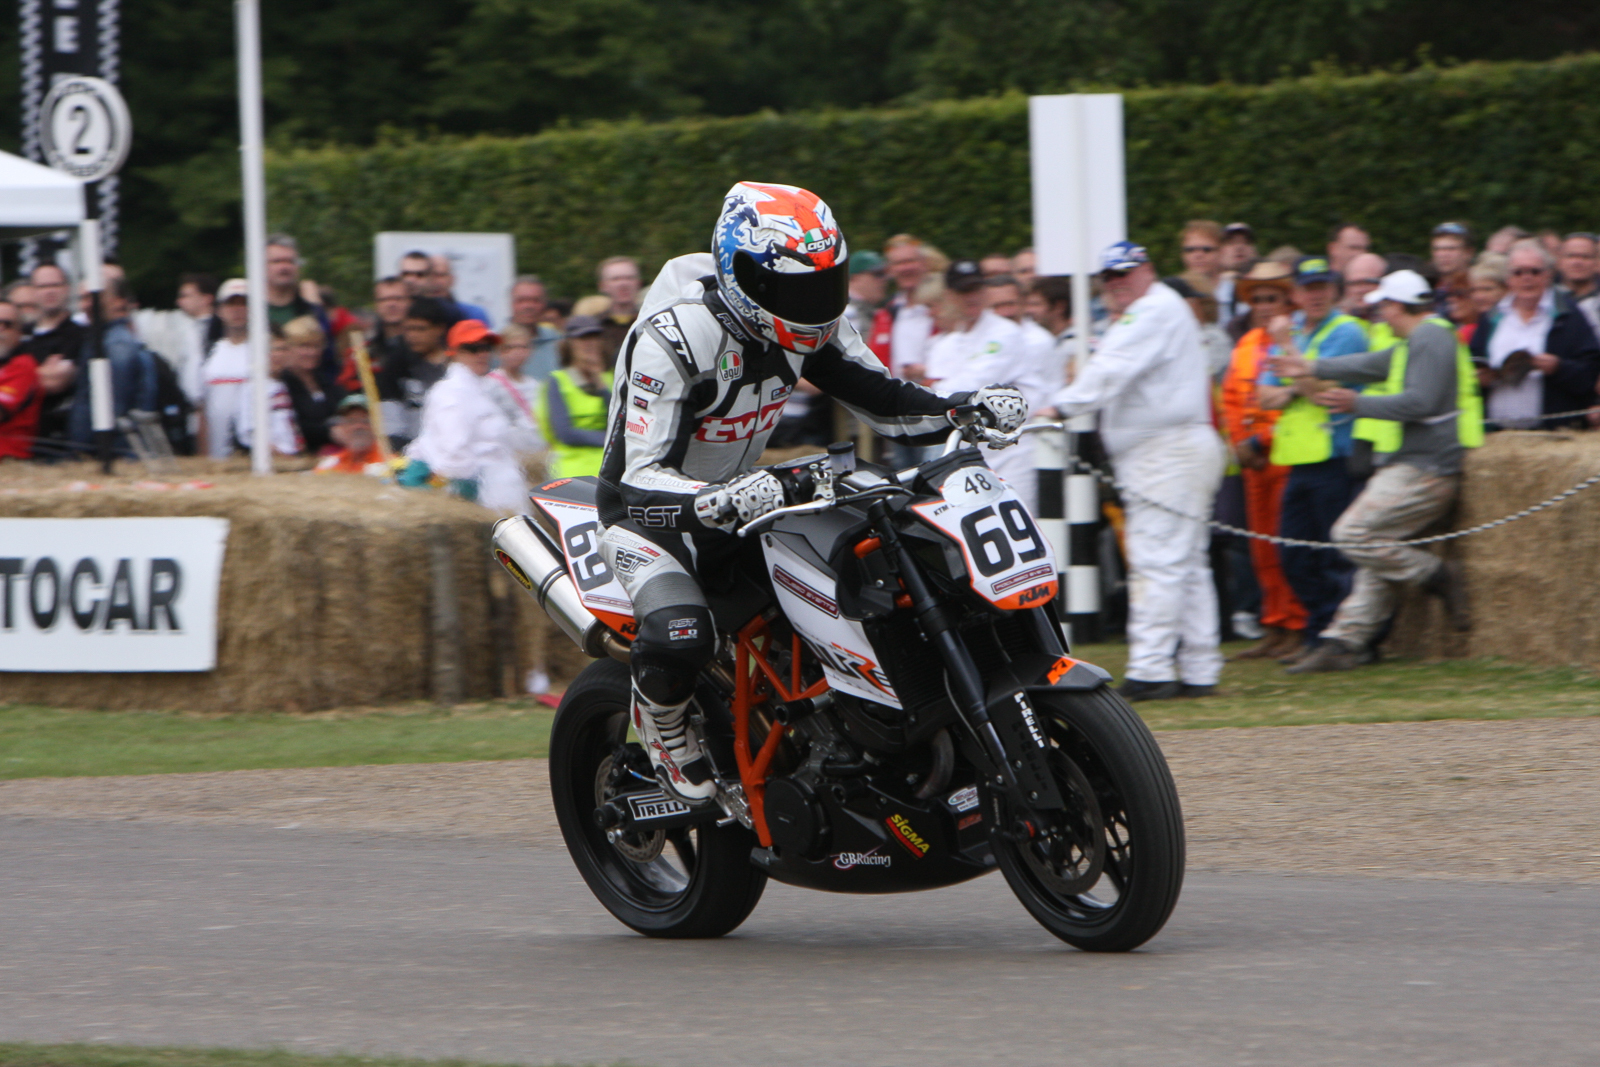 20080711 - Goodwood Festival of Speed -080711 -015